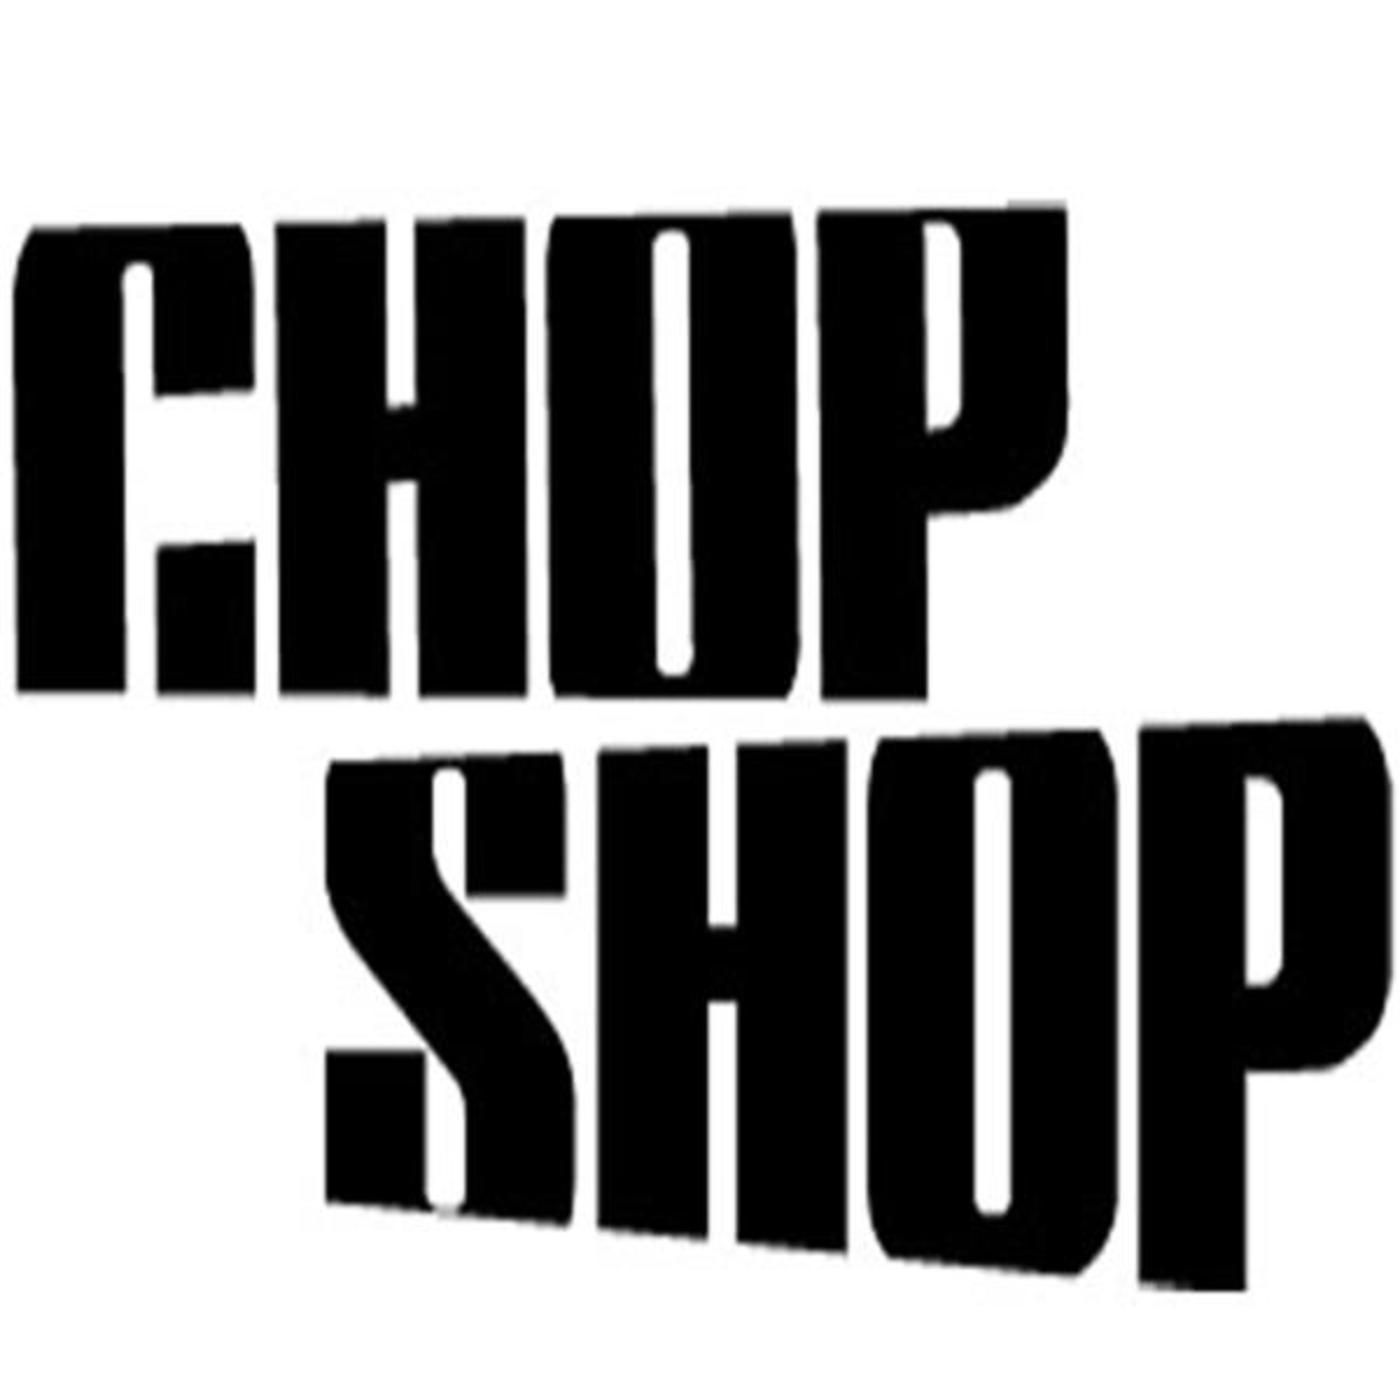 """The Chop Shop"" NFL Combine 2010 wrap up & Opening of Free Agency"